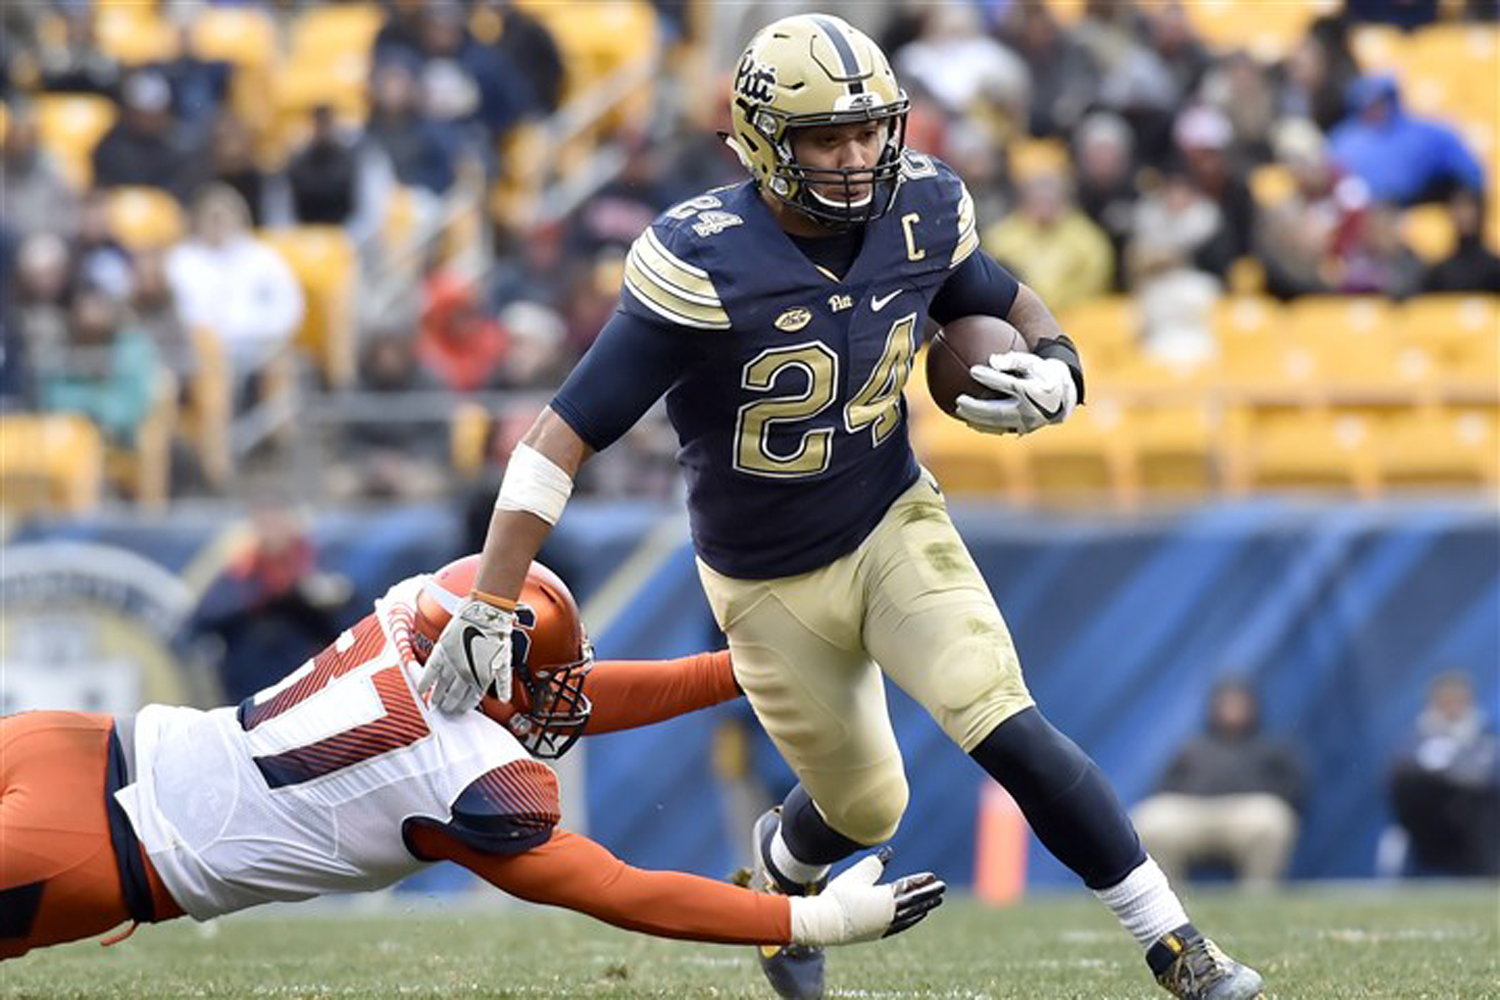 Pitt's James Conner evades Syracuse's Ted Taylor in the second quarter Nov. 26, 2016, at Heinz Field. Pitt won, 76-61.